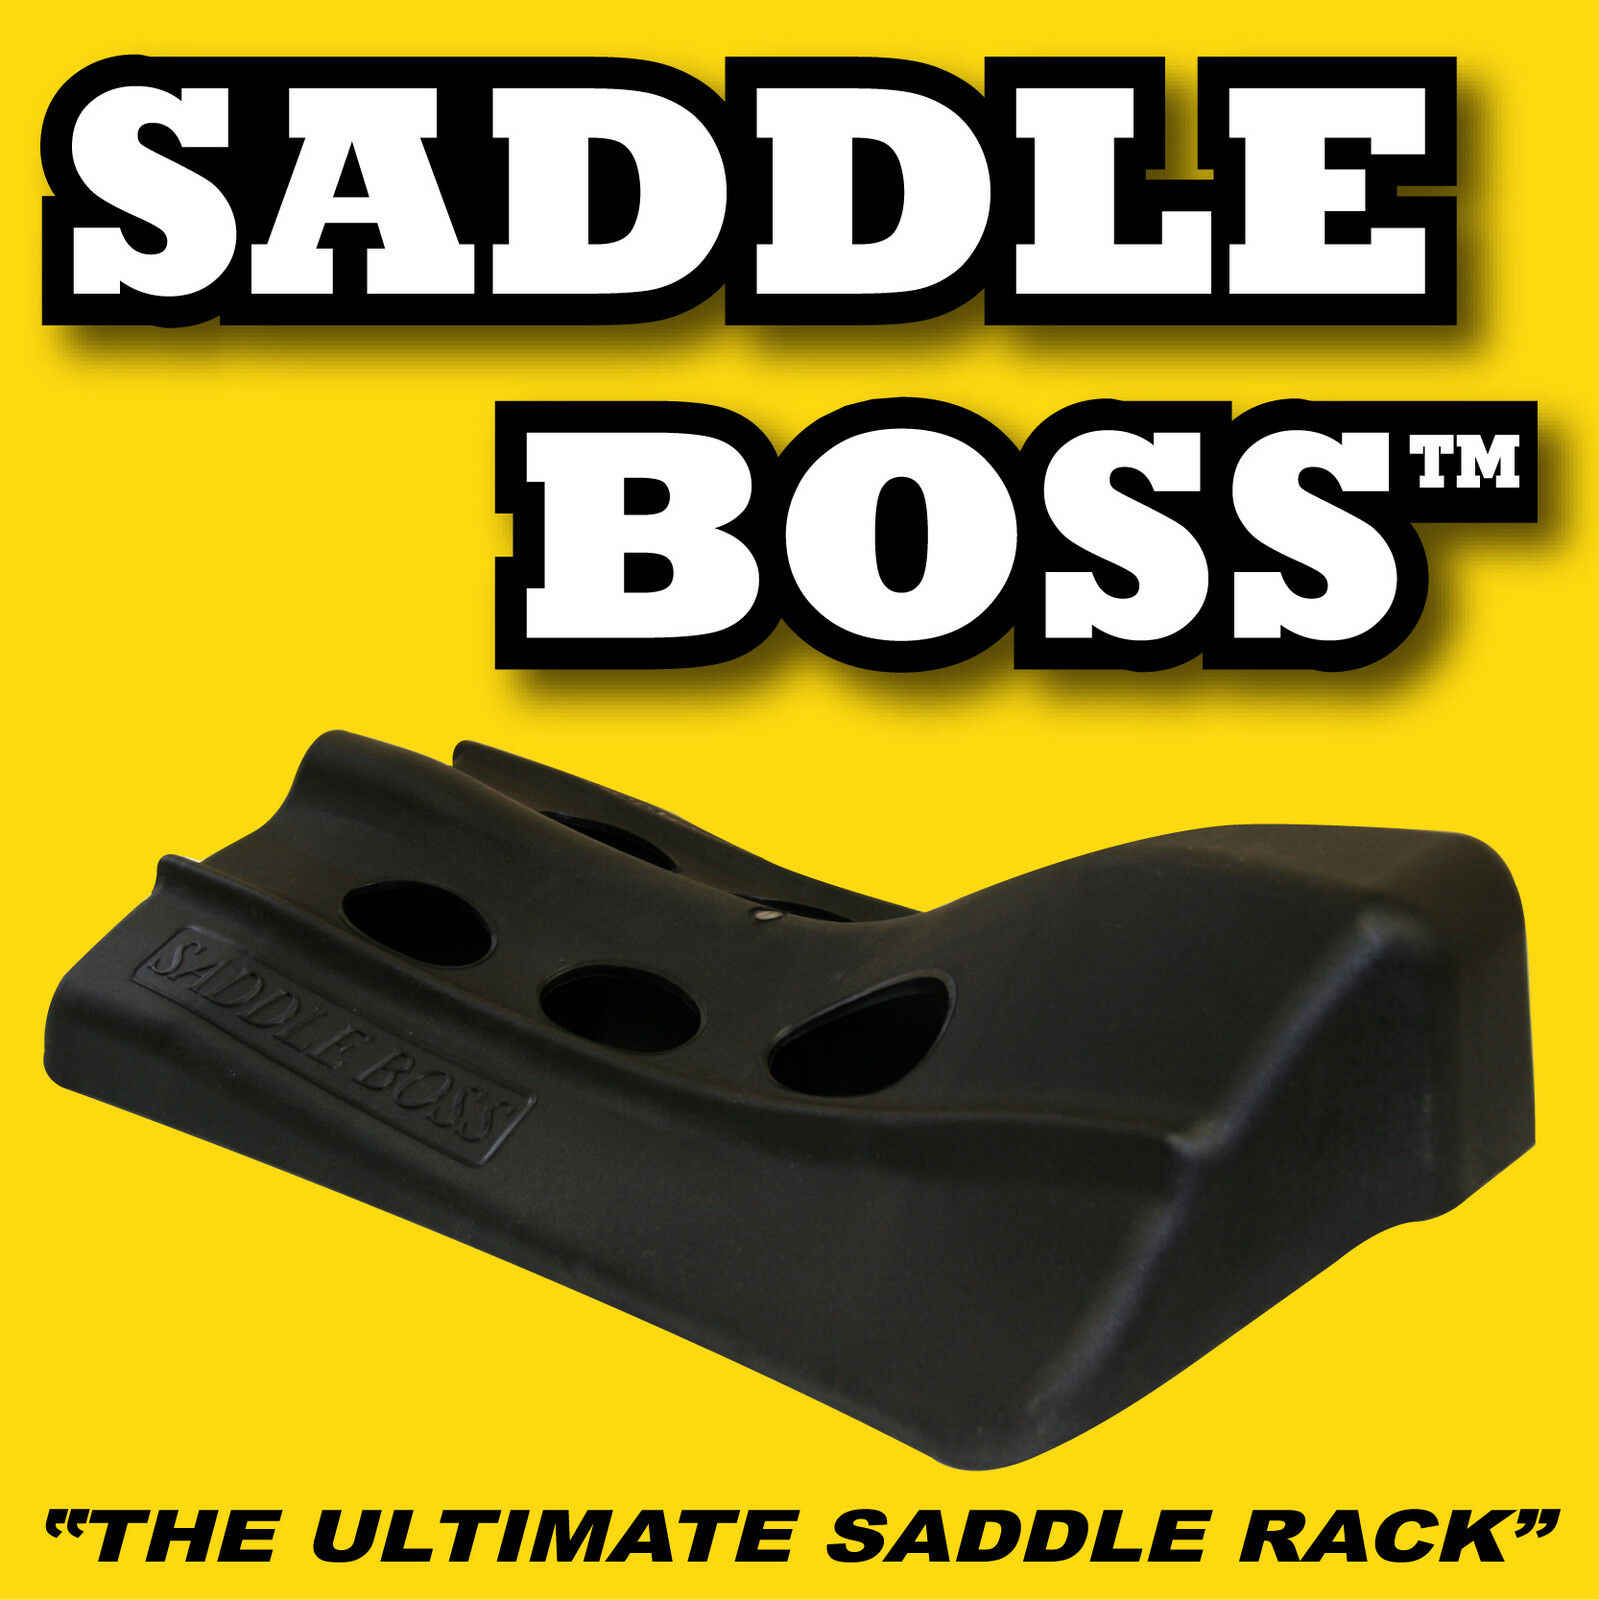 4 Western Saddle racks por Silla Boss La Mejor Rack